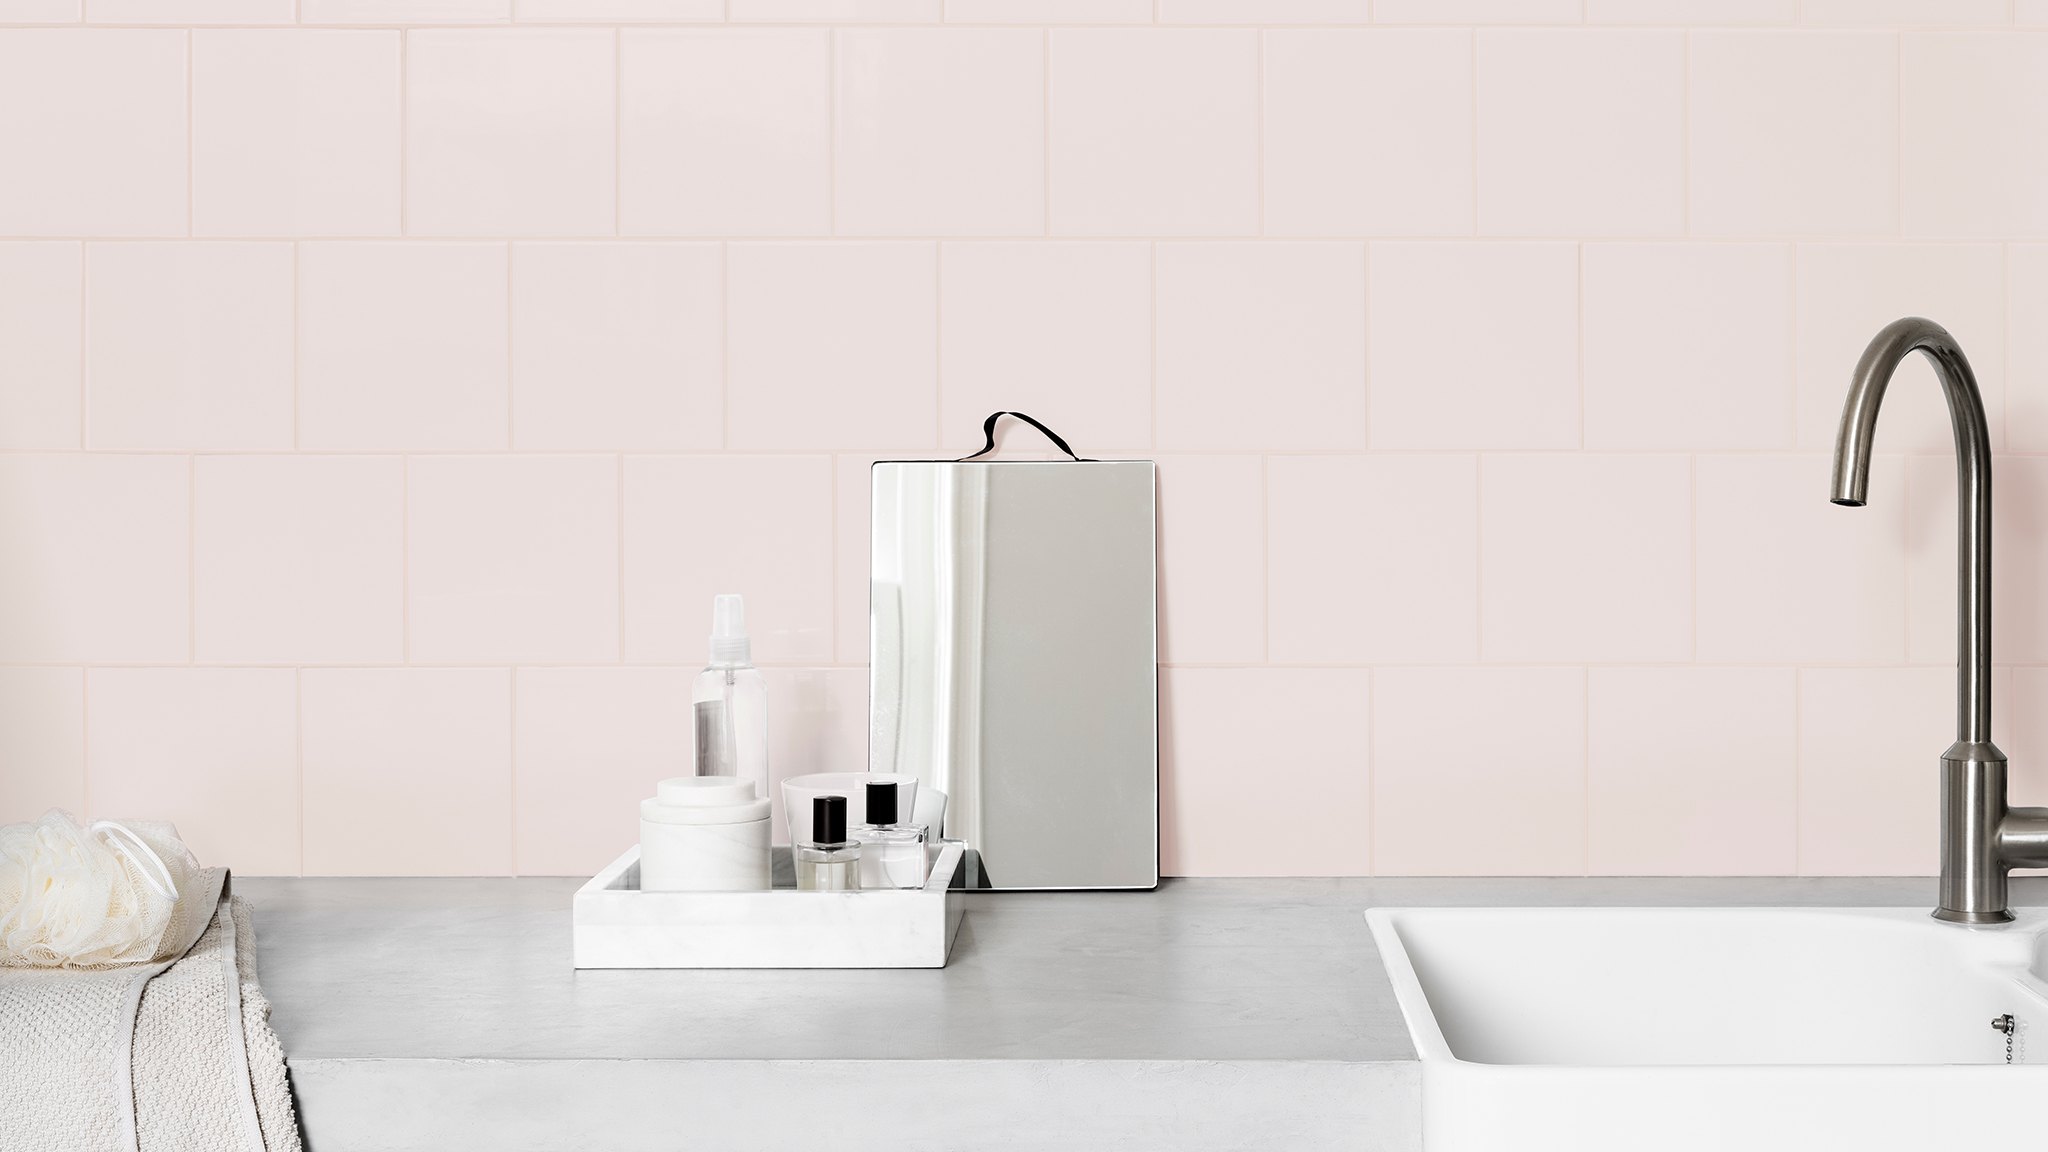 dulux-simply-refresh-tiles-ideas-global-6.